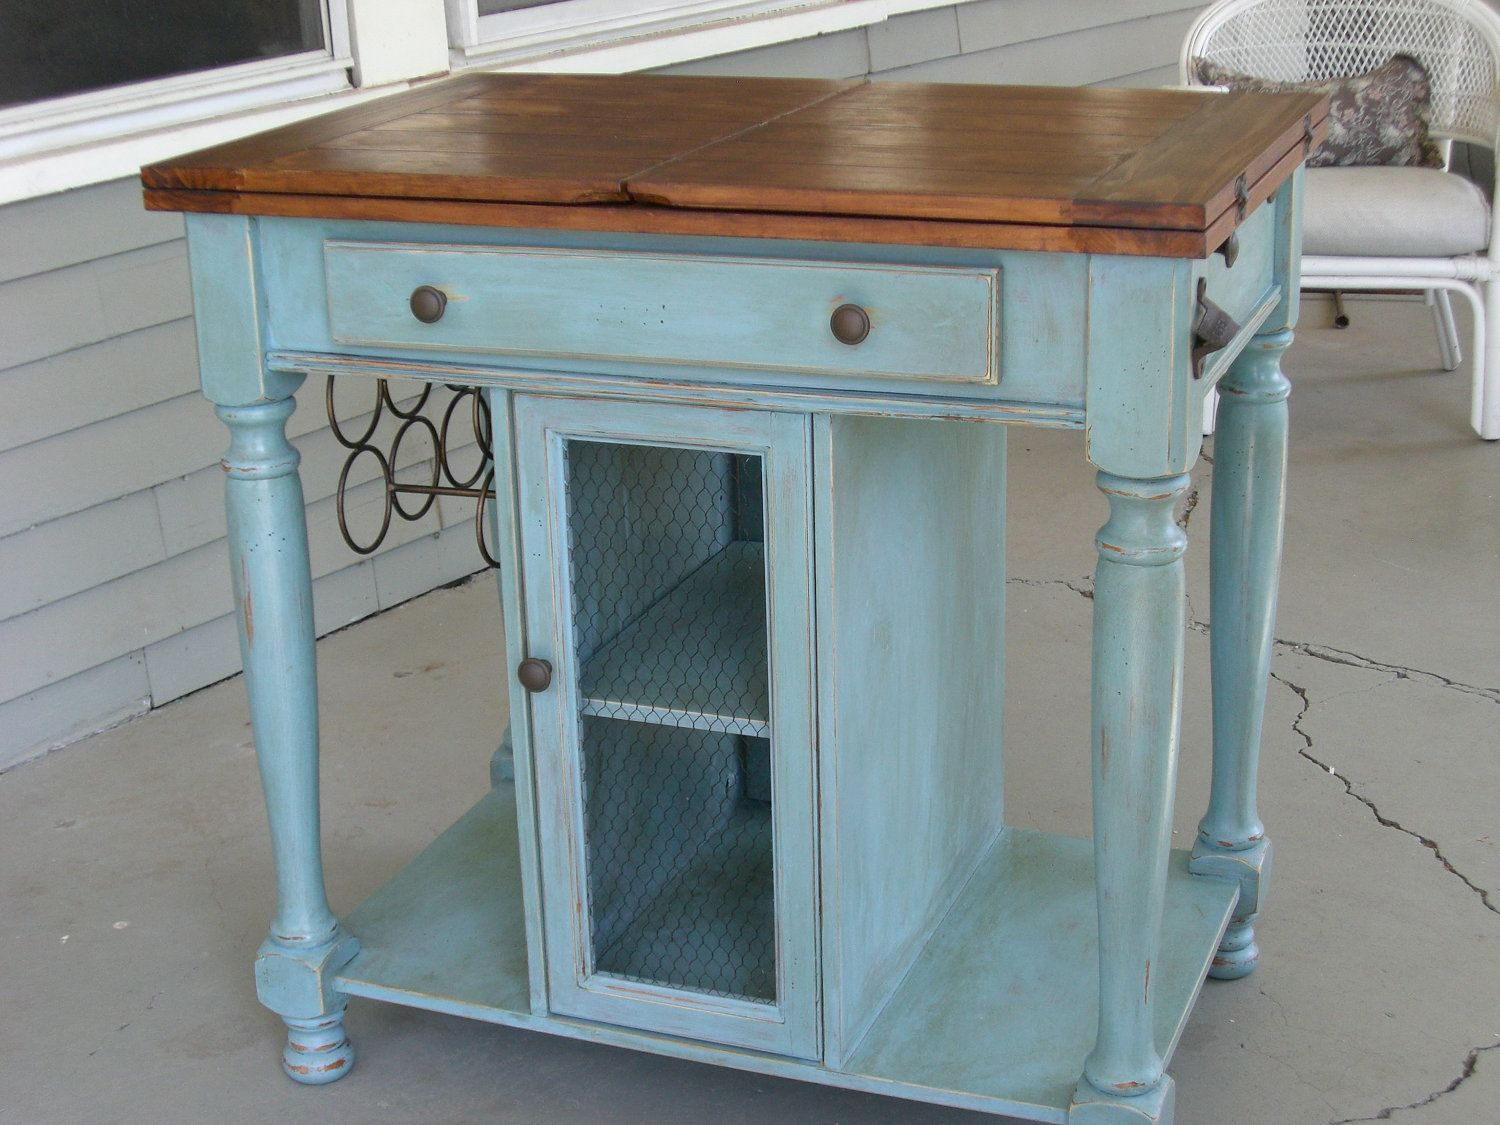 French Country Kitchen Island | French country kitchens, Kitchens ...